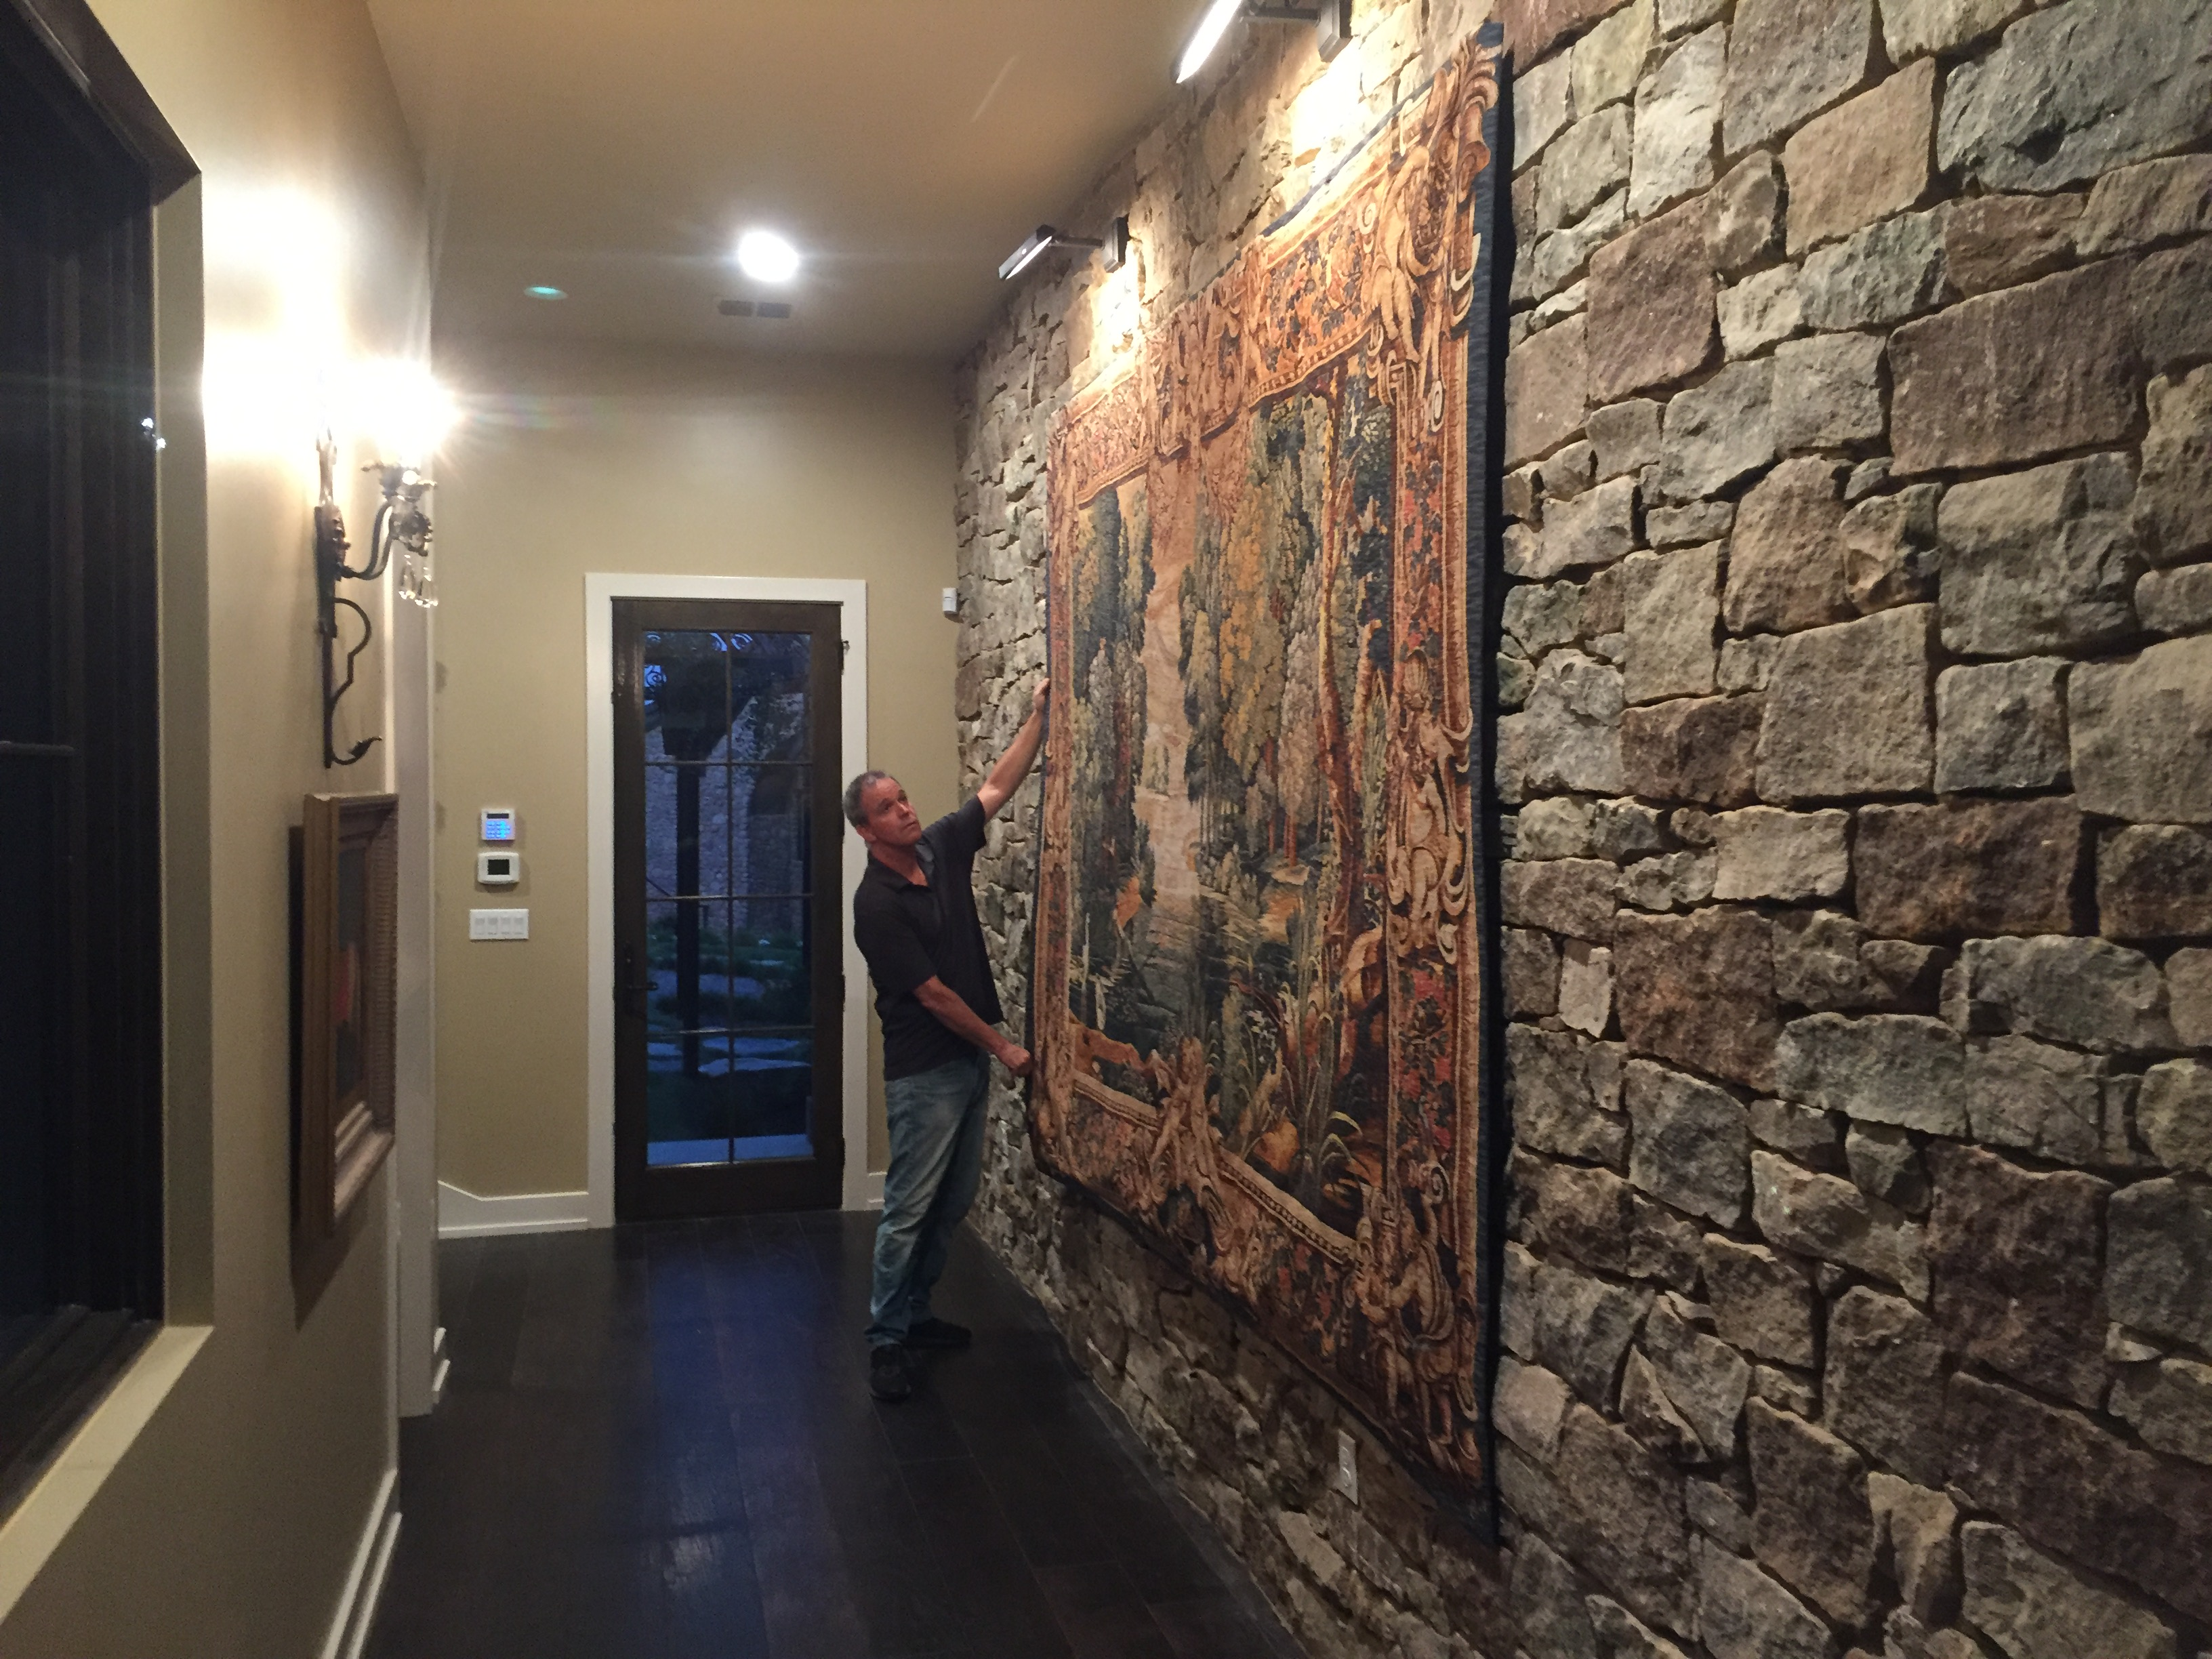 Hanging a Tapestry